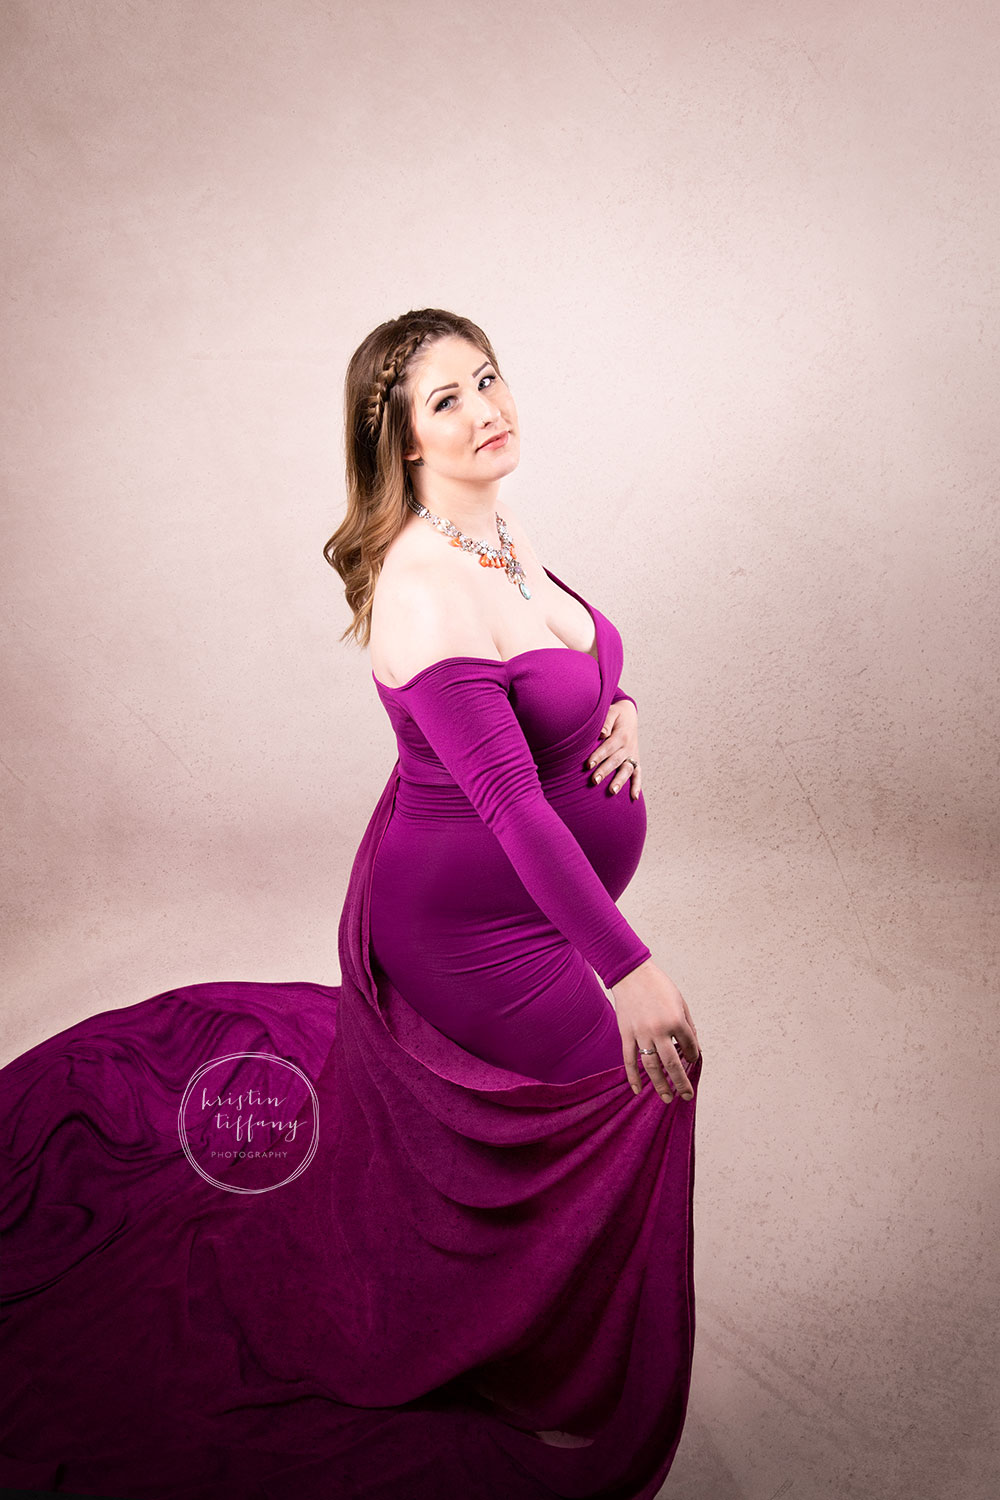 a photo of a pregnant woman at her maternity photo shoot